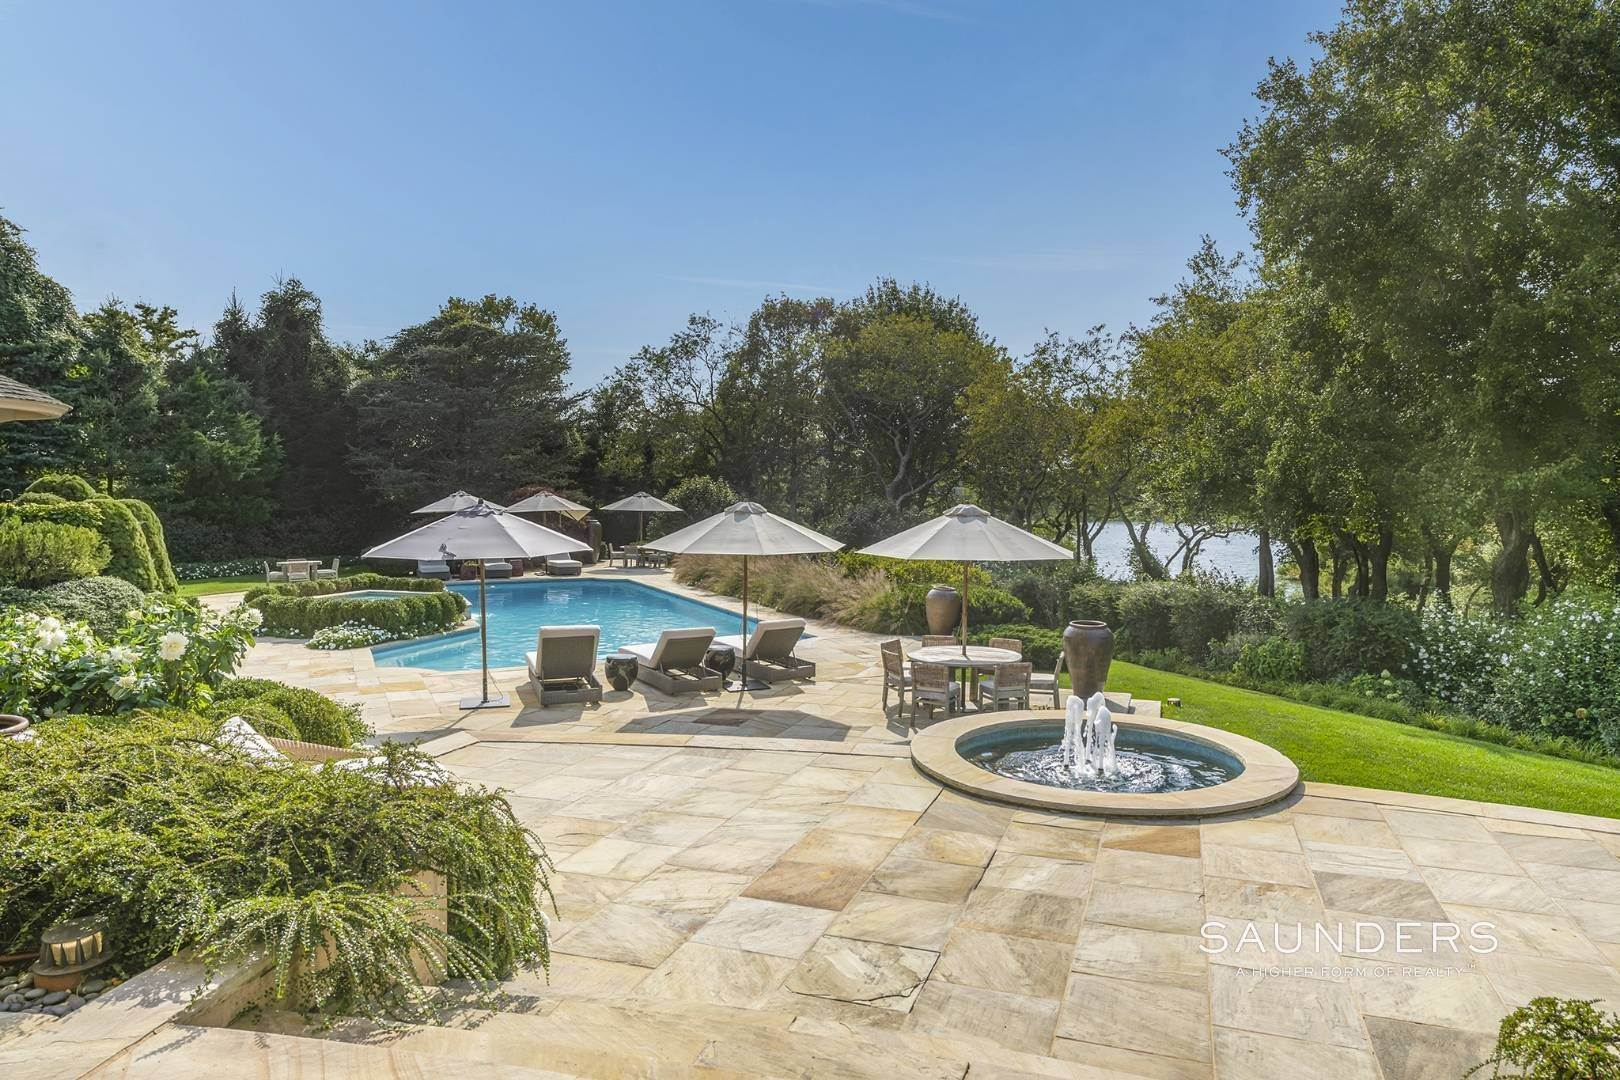 Single Family Homes for Sale at Secluded Waterfront Estate In Bridgehampton 164 Trelawney Road, Bridgehampton, Southampton Town, NY 11932